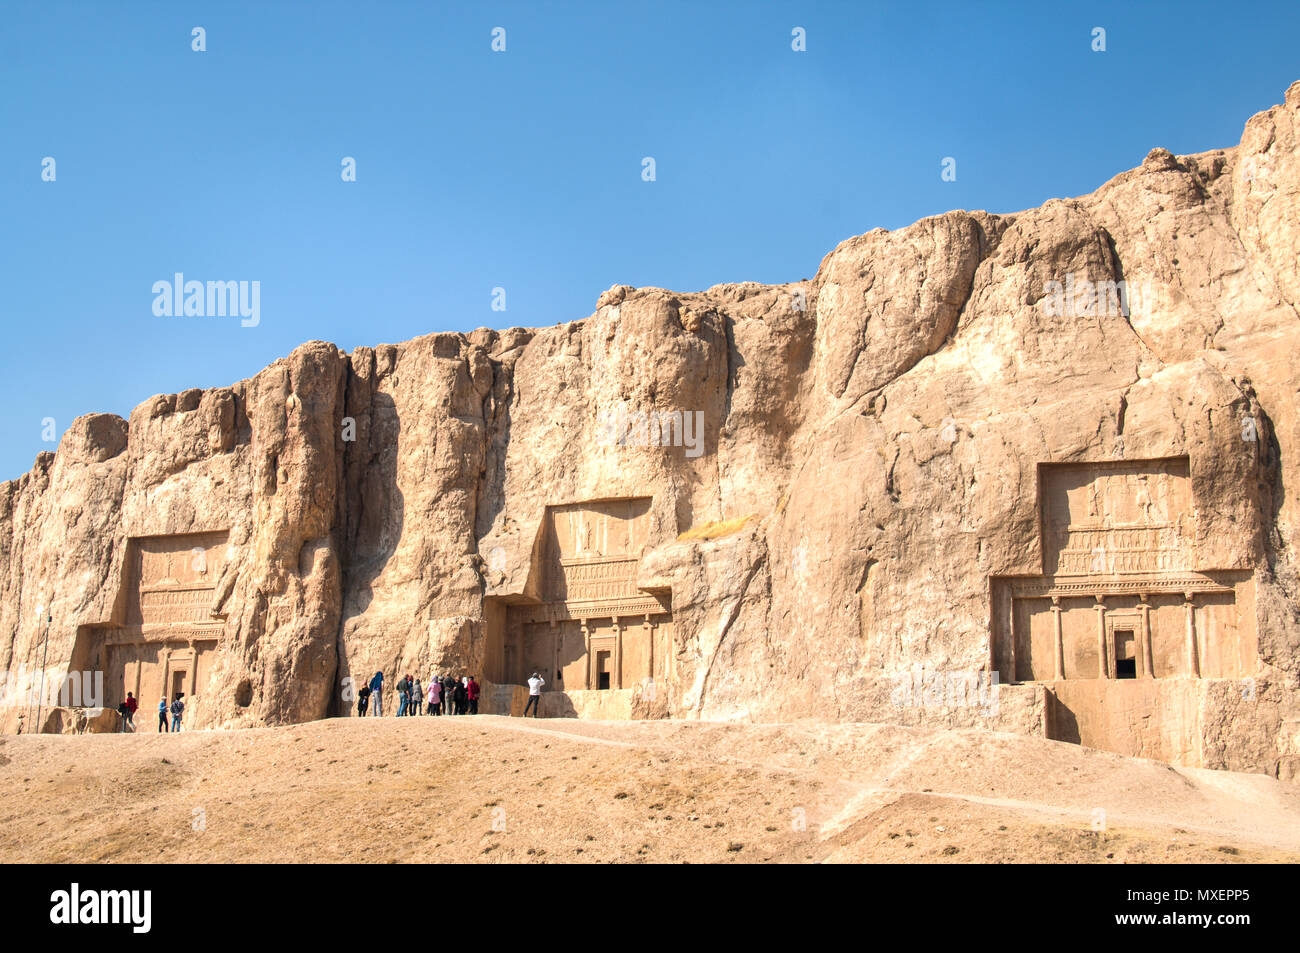 PERSEPOLIS, IRAN - NOVEMBER 2017: The Ancient city Persepolis was once the capital of the Achaemenid empire and is now UNESCO heritage. The site can b Stock Photo